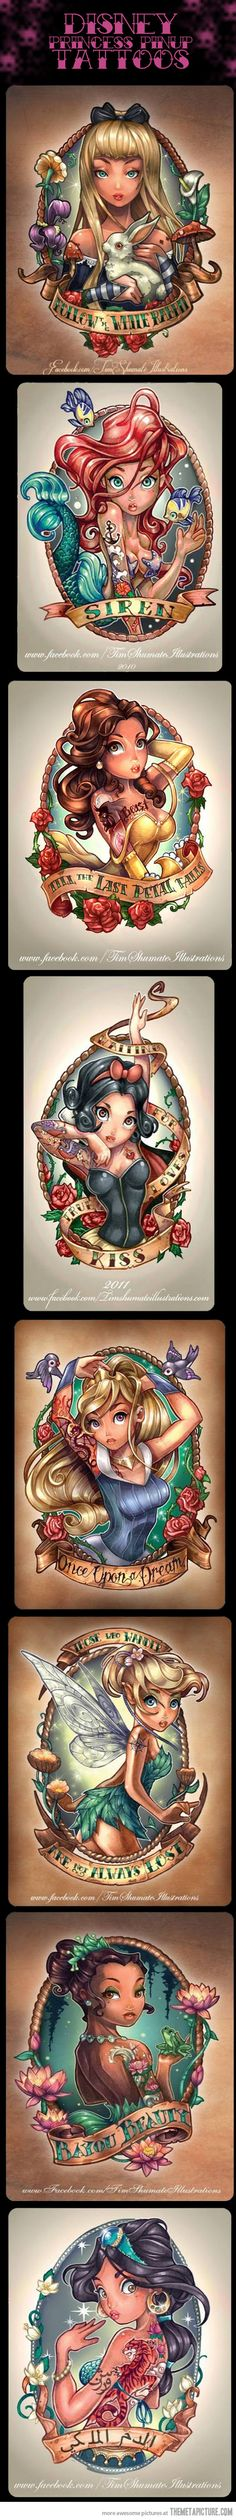 8 Very Cool Disney Princess Pinup Tattoos... - The Meta Picture